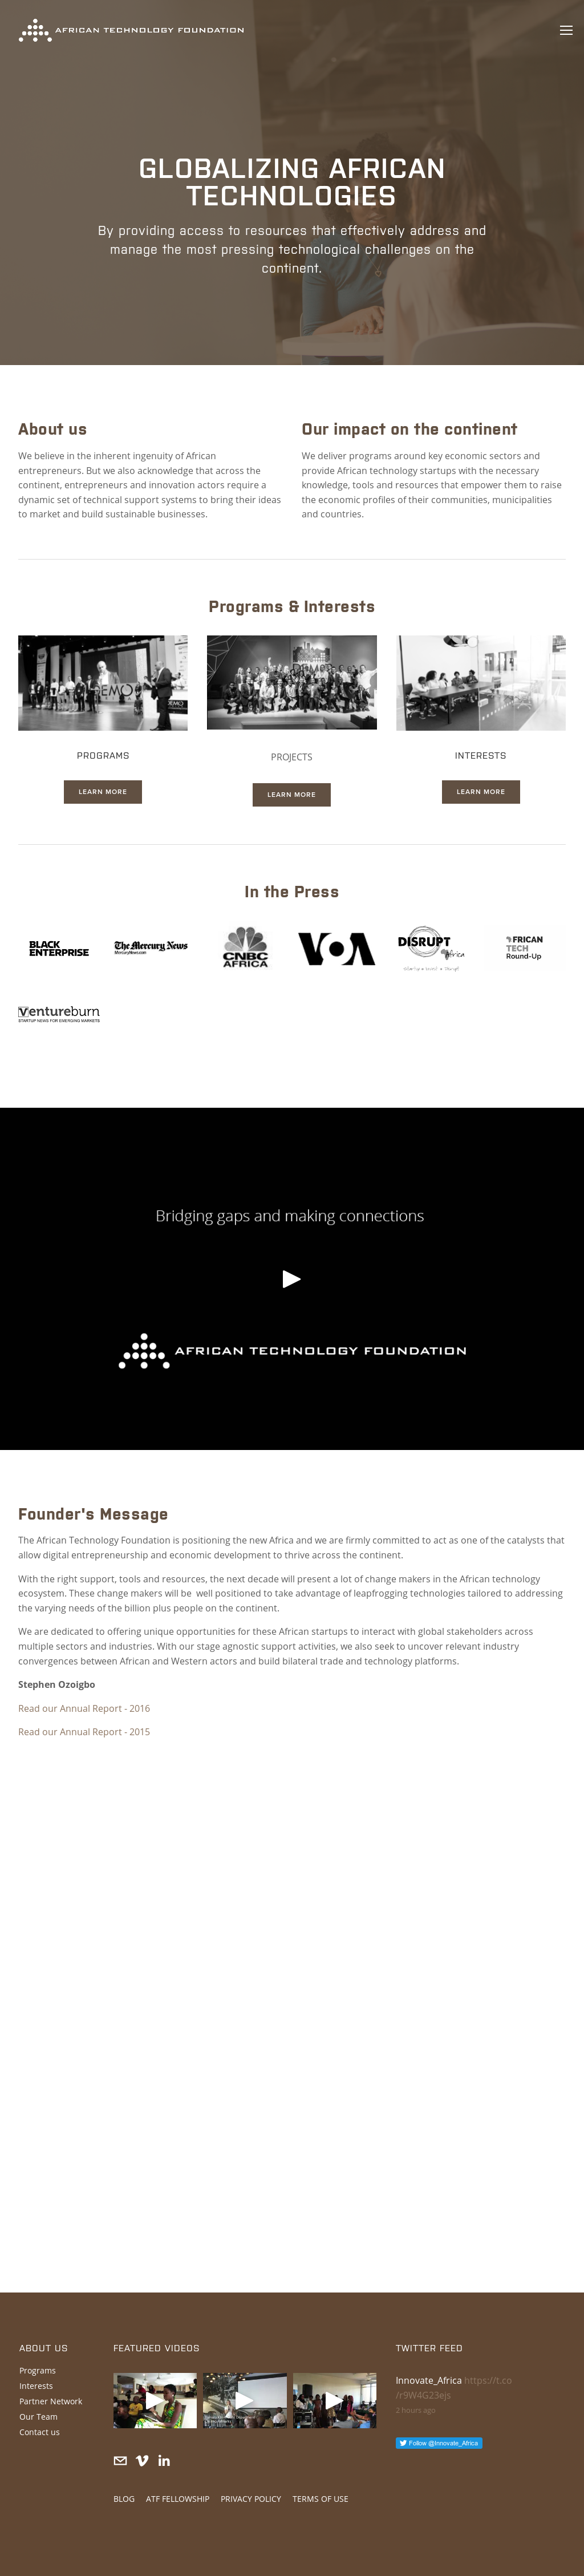 foundation of technology Membership provides the opportunity to become a part of a cutting-edge scientific community that will shape future developments in technology commercialization.